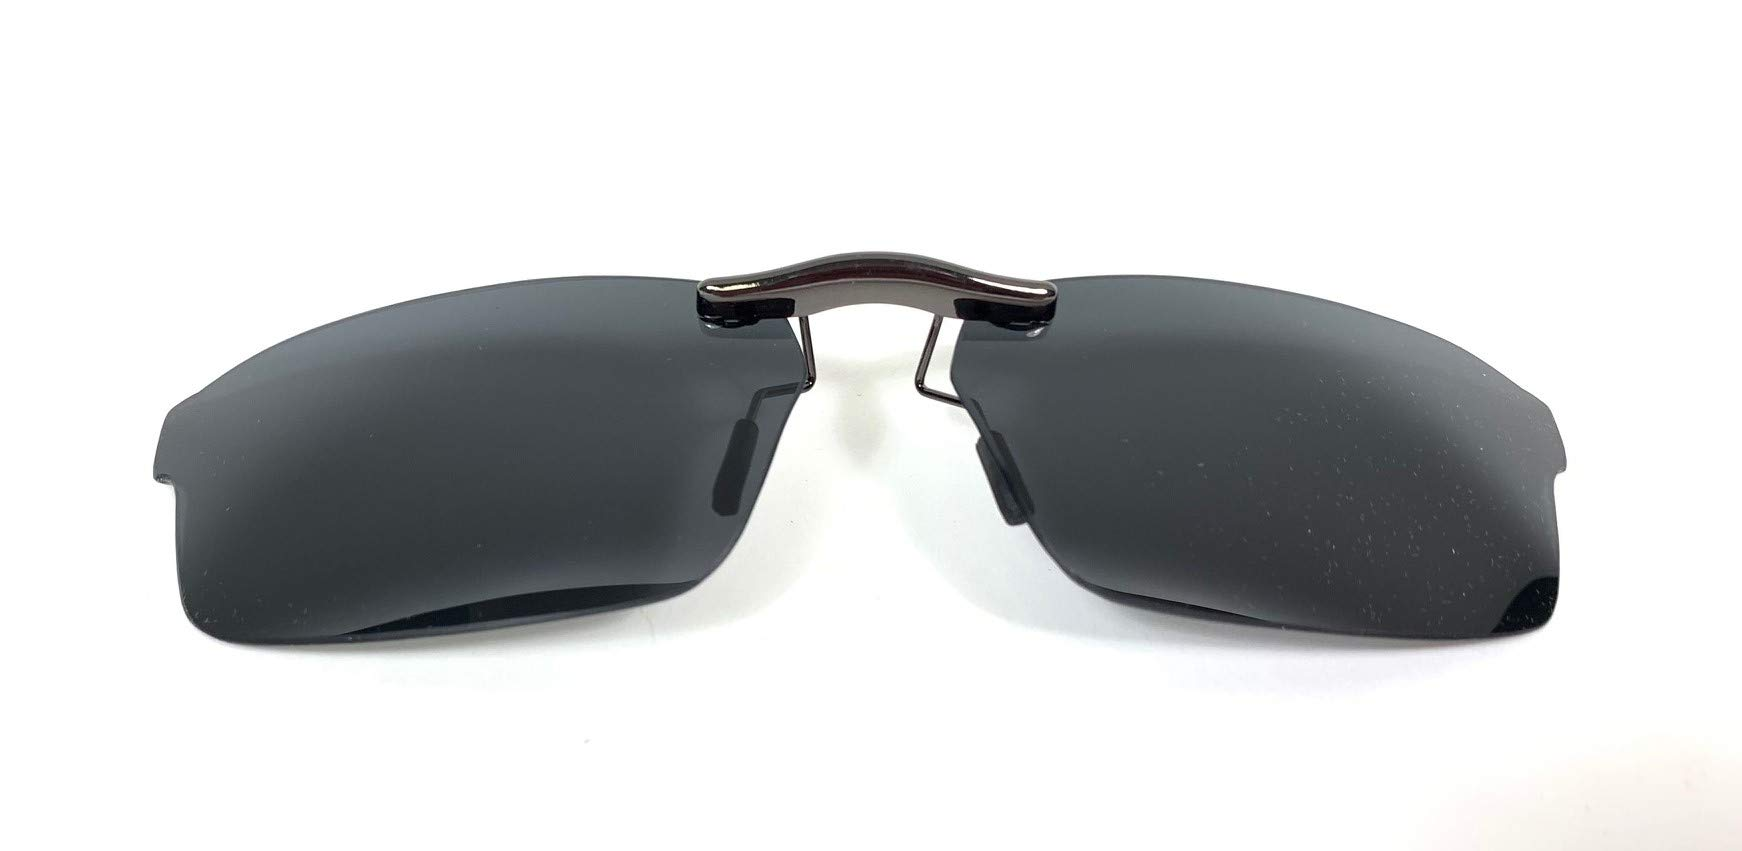 Custom Polarized CLIP-ON Sunglasses (Color: Grey) FOR Ray-Ban RB5169 Size 54x16 (Frame NOT Included) by Pasadena Shades